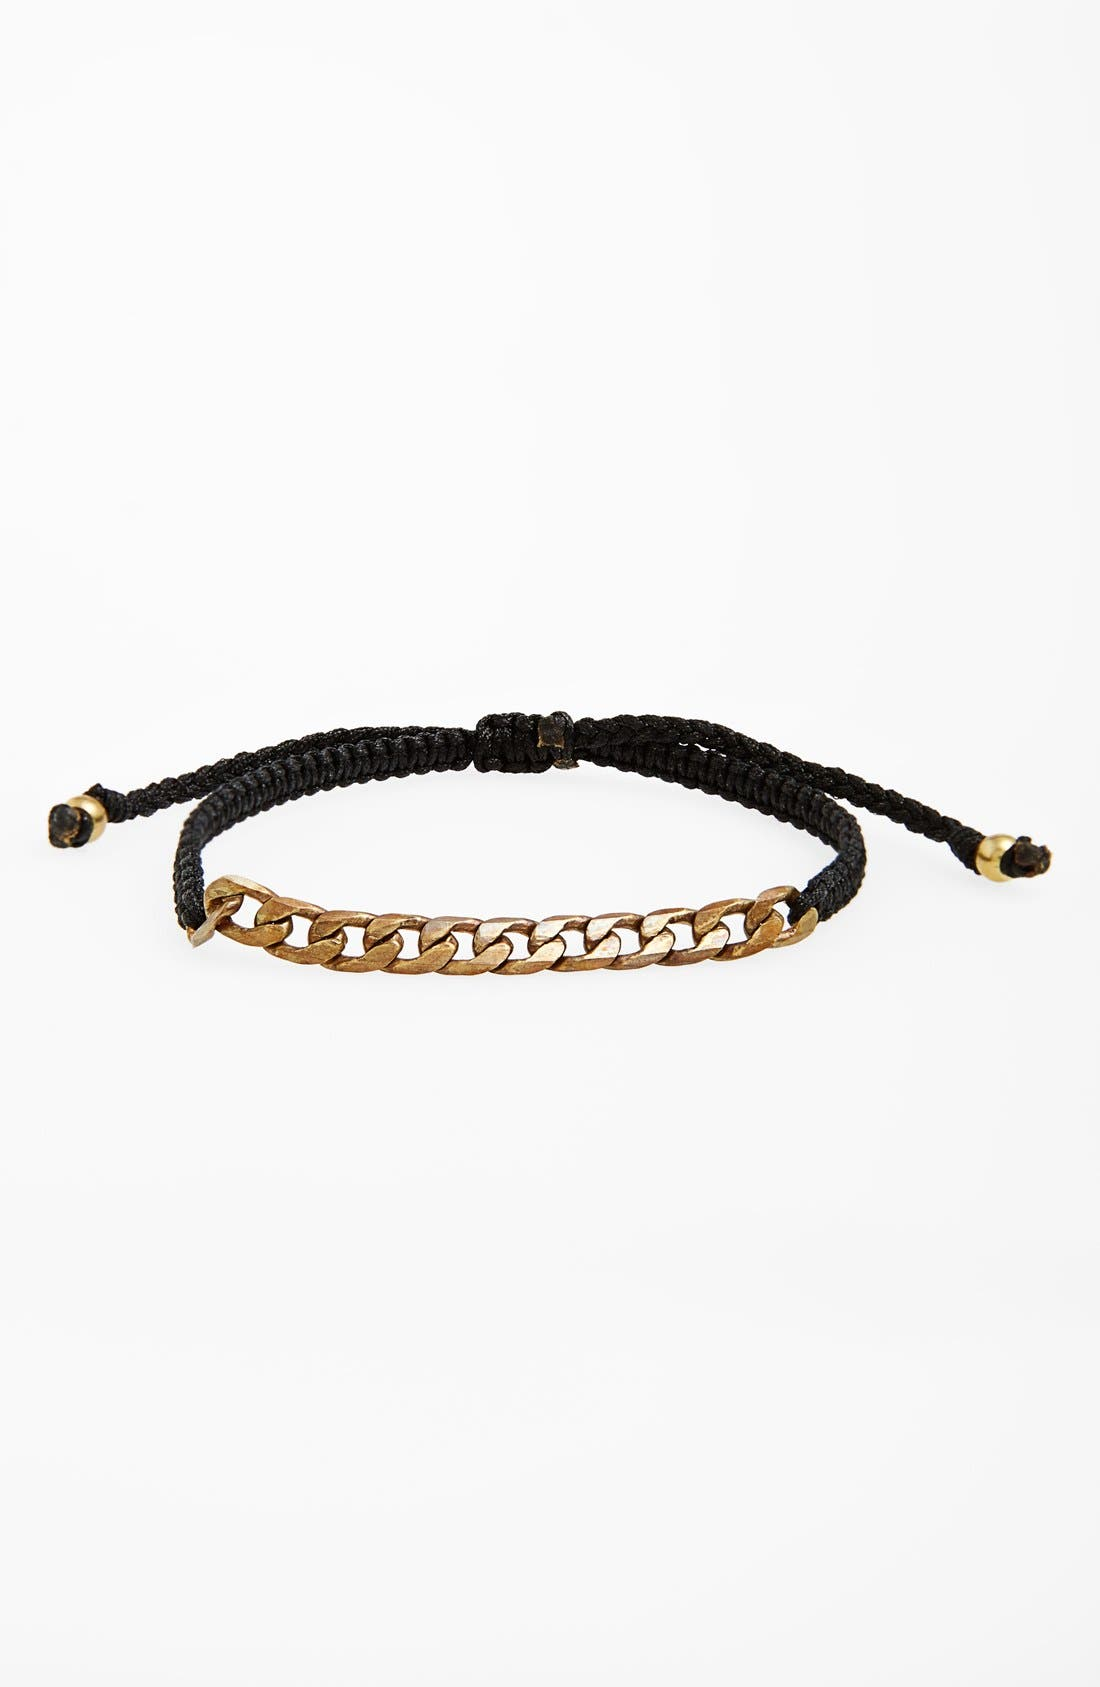 Main Image - Max Reed Brass Chain Inset Nylon Cord Bracelet